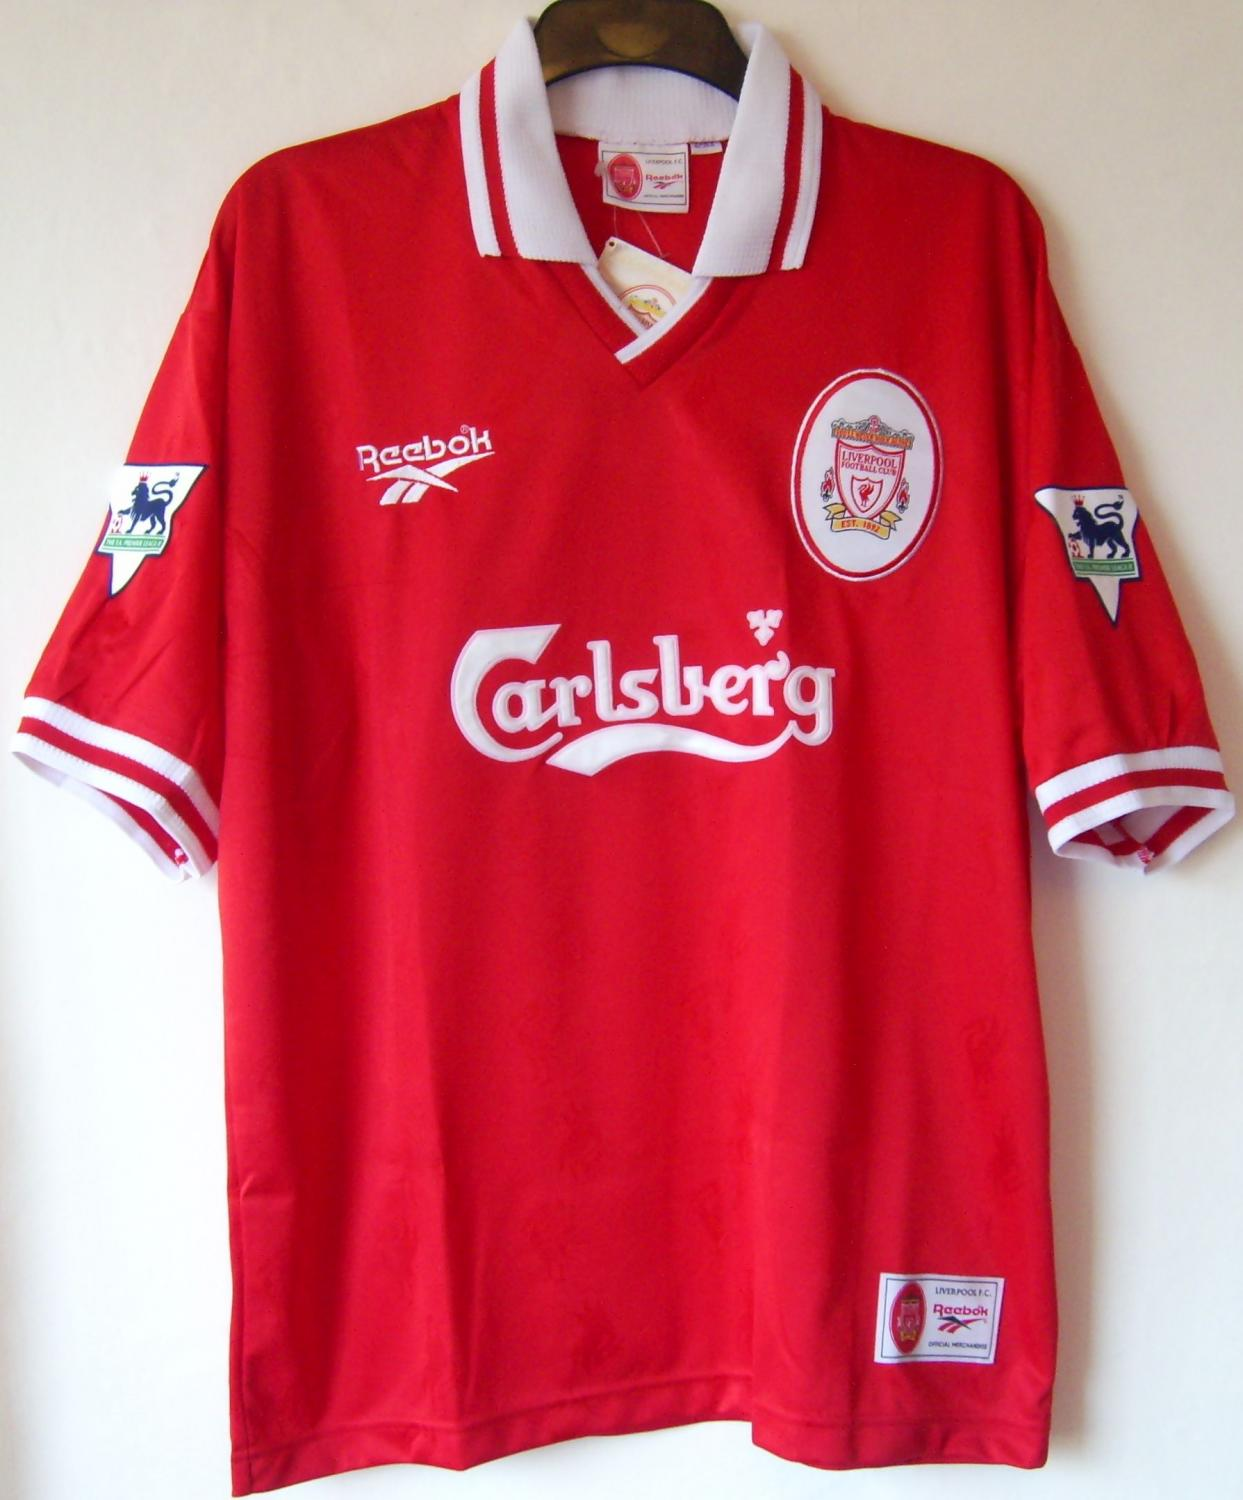 Details about Reebok LIVERPOOL Carlsberg FOOTBALL Shirt ADULT Size XL